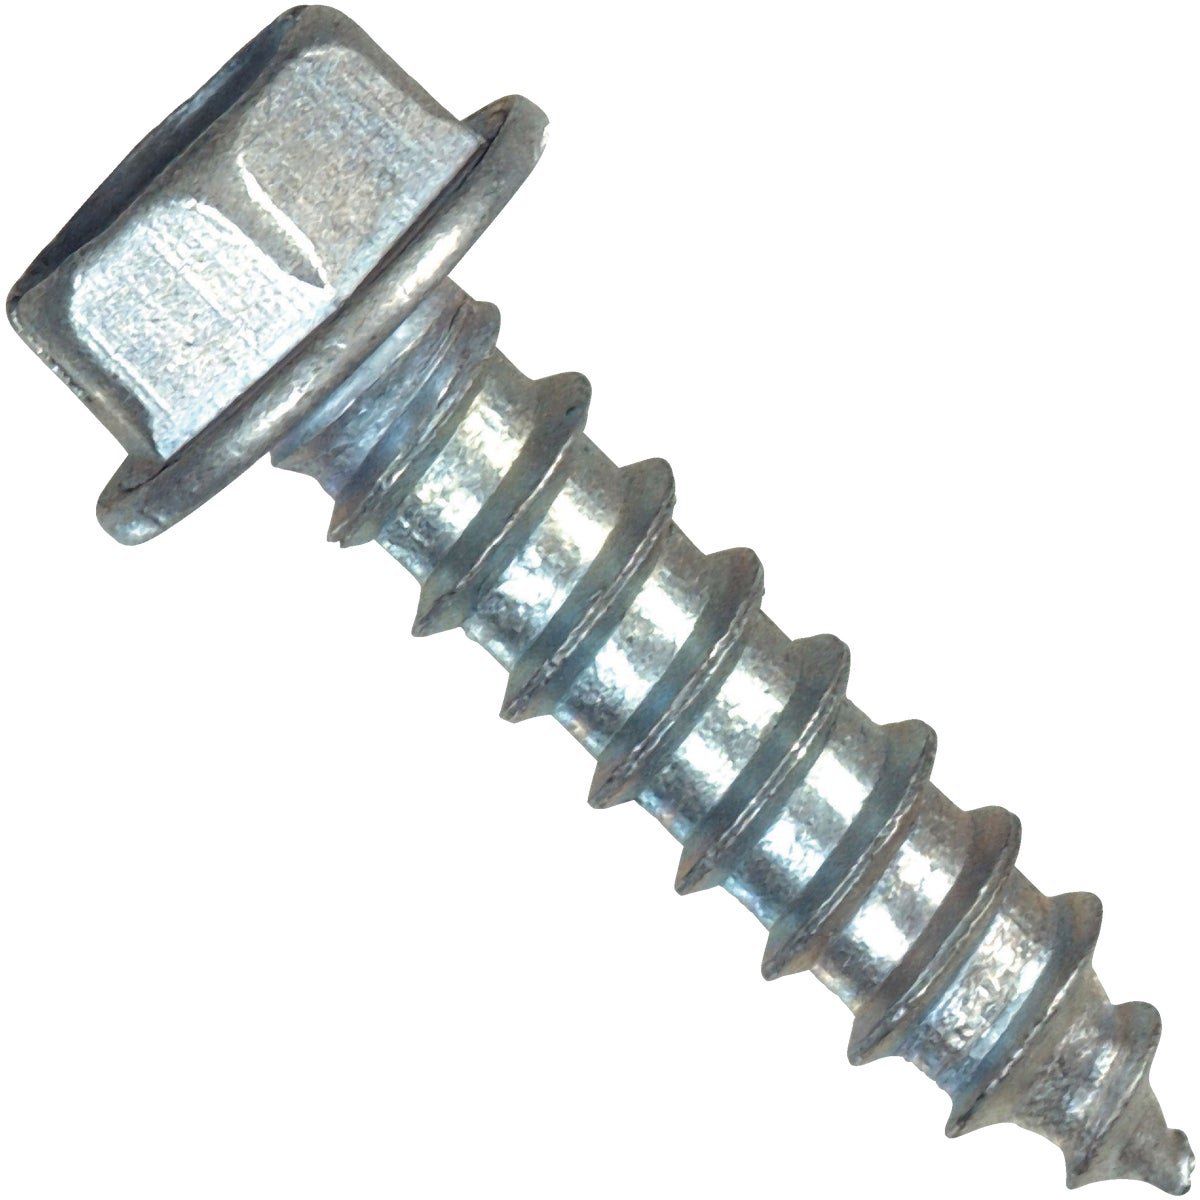 10X1 HWH SHT MTL SCREW - 70298 by Hillman Fastener